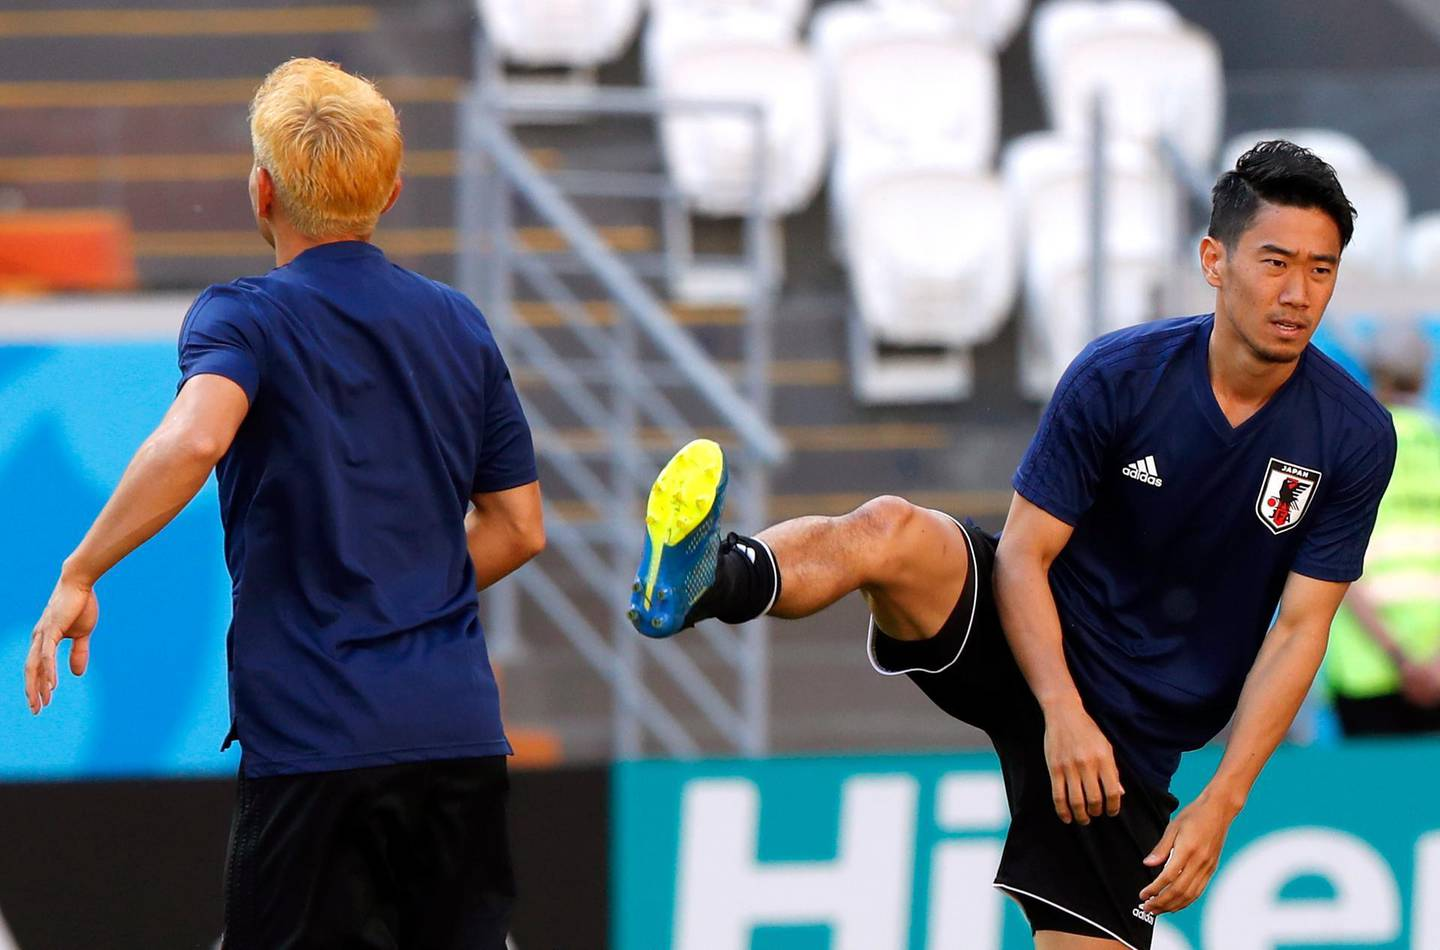 epa06818826 Japan national soccer team's midfielder Shinji Kagawa (R) attends his team training session at Mordovia Arena in Saransk, Russia, 18 June 2018. Japan will face Colombia in the FIFA World Cup 2018 group H preliminary round soccer match at Mordovia Arena in Saransk, Russia on 19 June 2018.  EPA/RUNGROJ YONGRIT   EDITORIAL USE ONLY